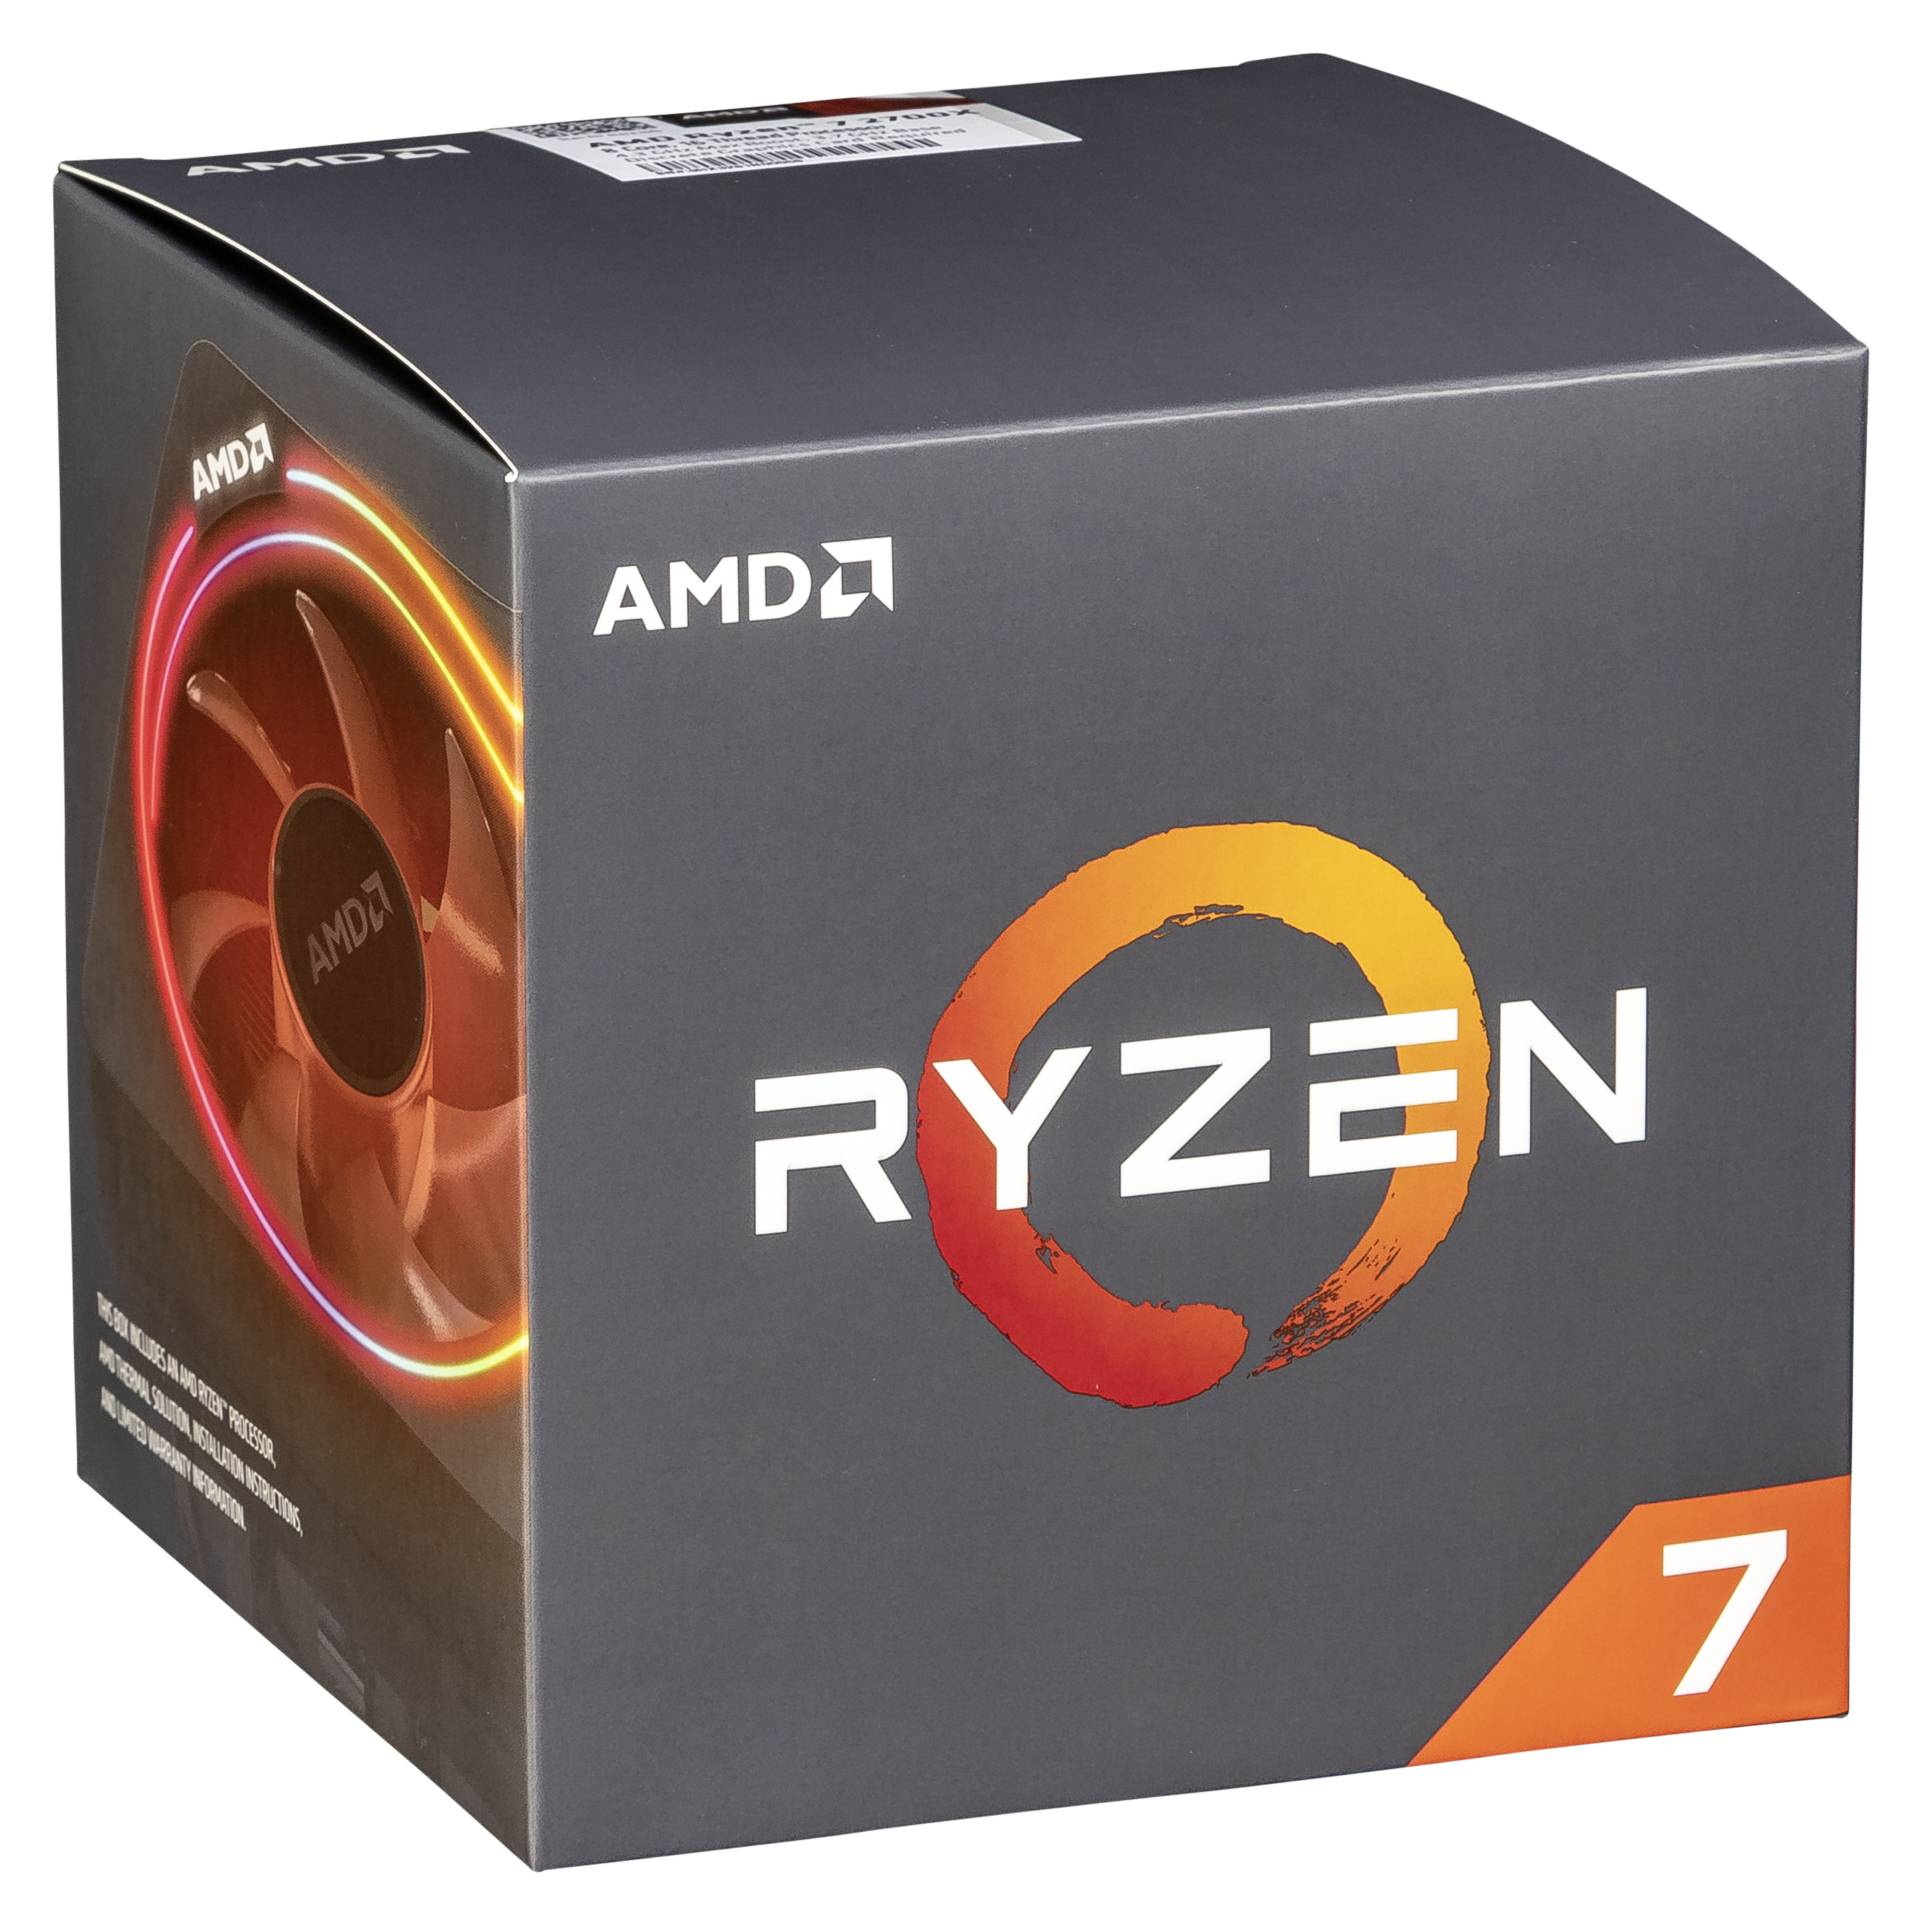 """Amd Gmbh""""AM4 Ryzen 7 8 Box 2700X 4,35 GHz 8xCore 20MB 105W with Wraith Prism cooler"""""""